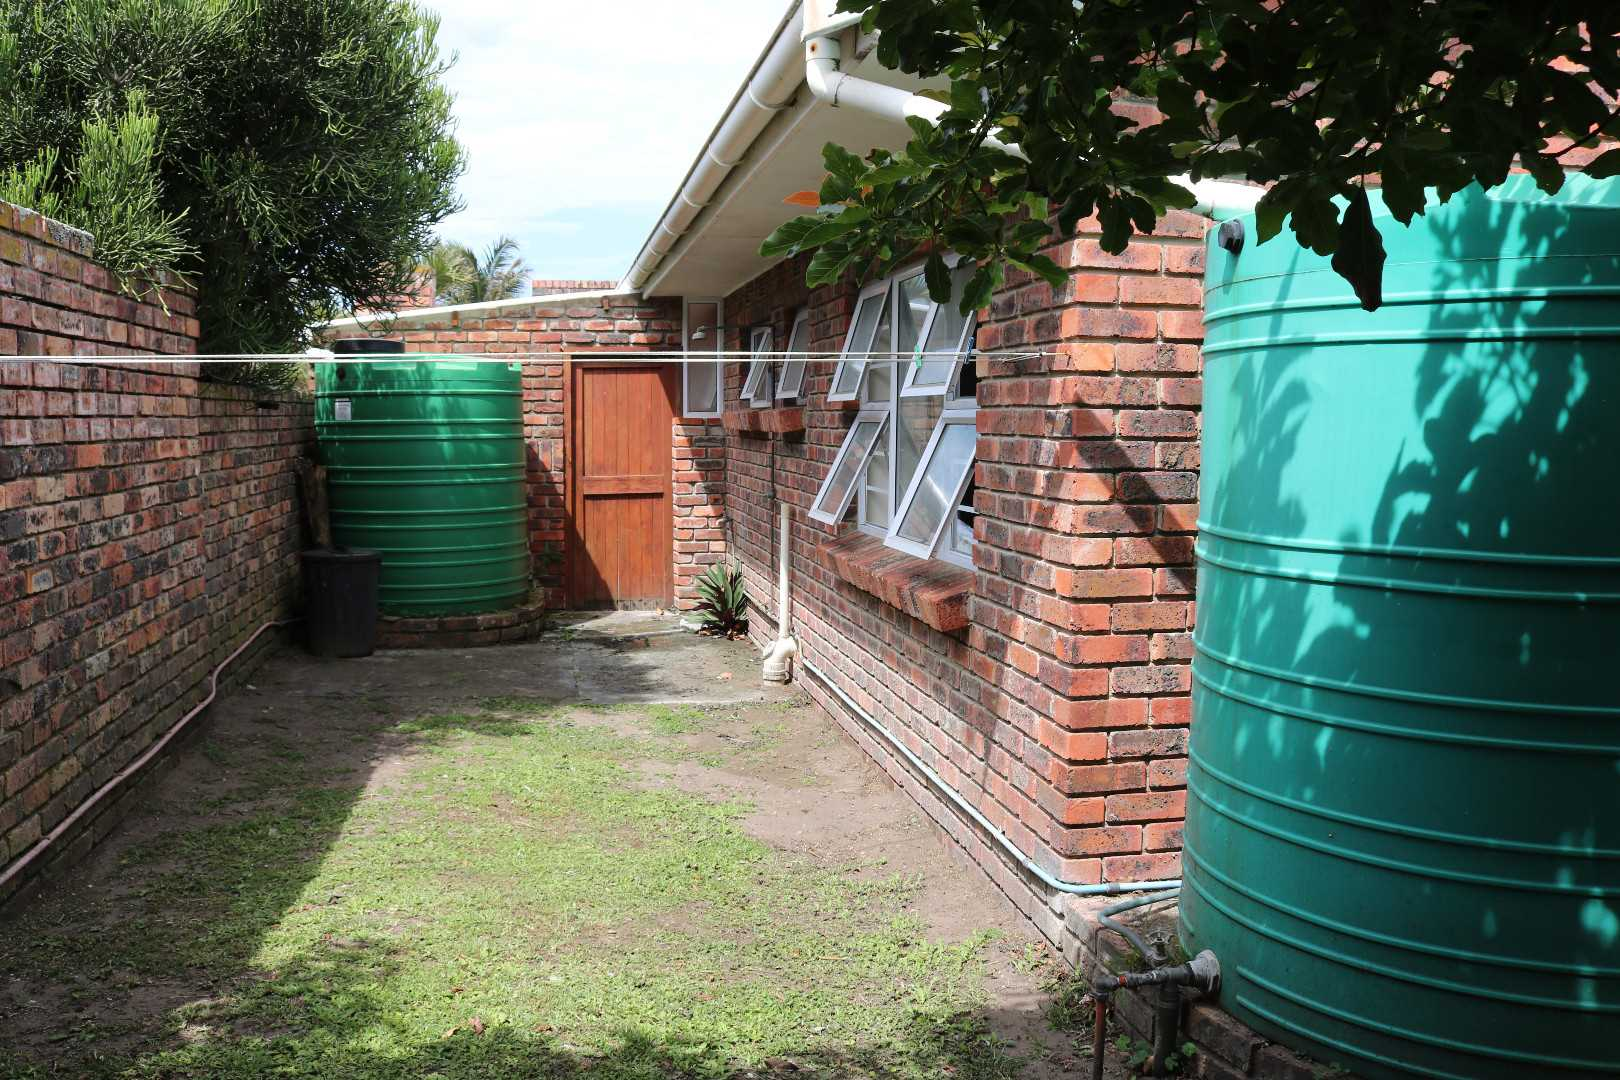 BACK YARD AREA WITH WATER TANKS